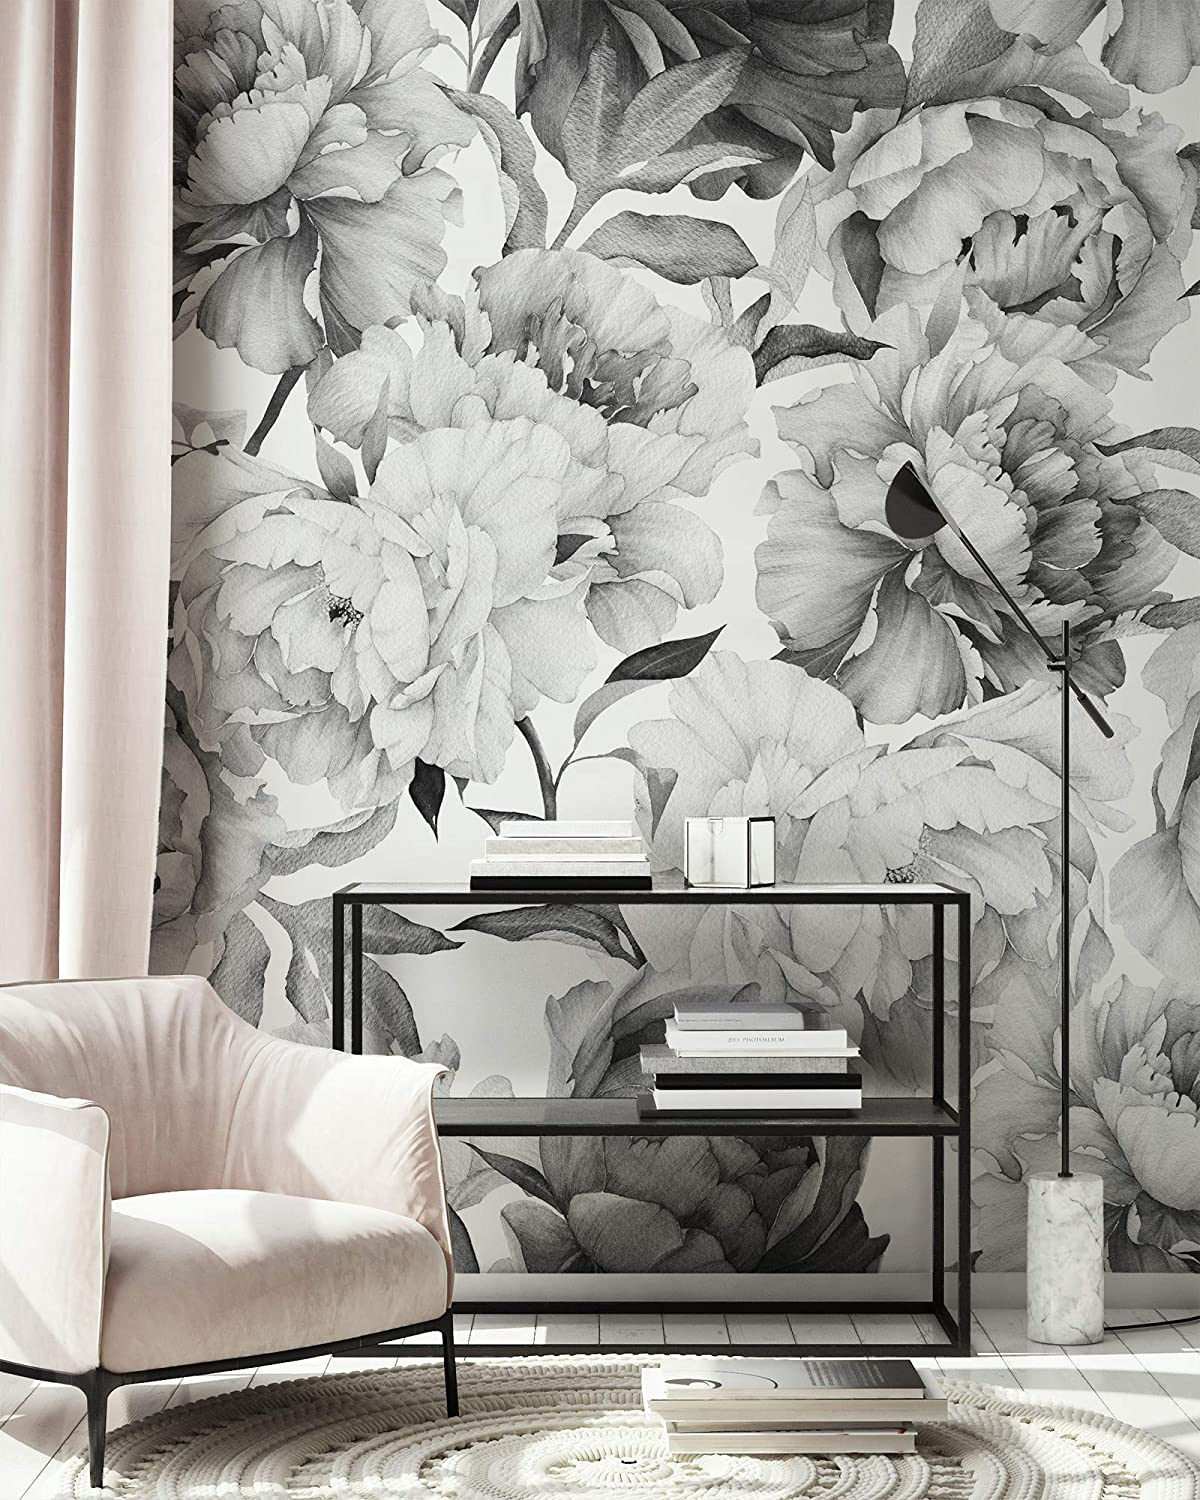 Buy Murwall Dark Floral Wallpaper Charcoal Flower Wall Mural Monochrome Peony Wall Print Classical Home Decor Cafe Design Online In Vietnam B07njdznwb